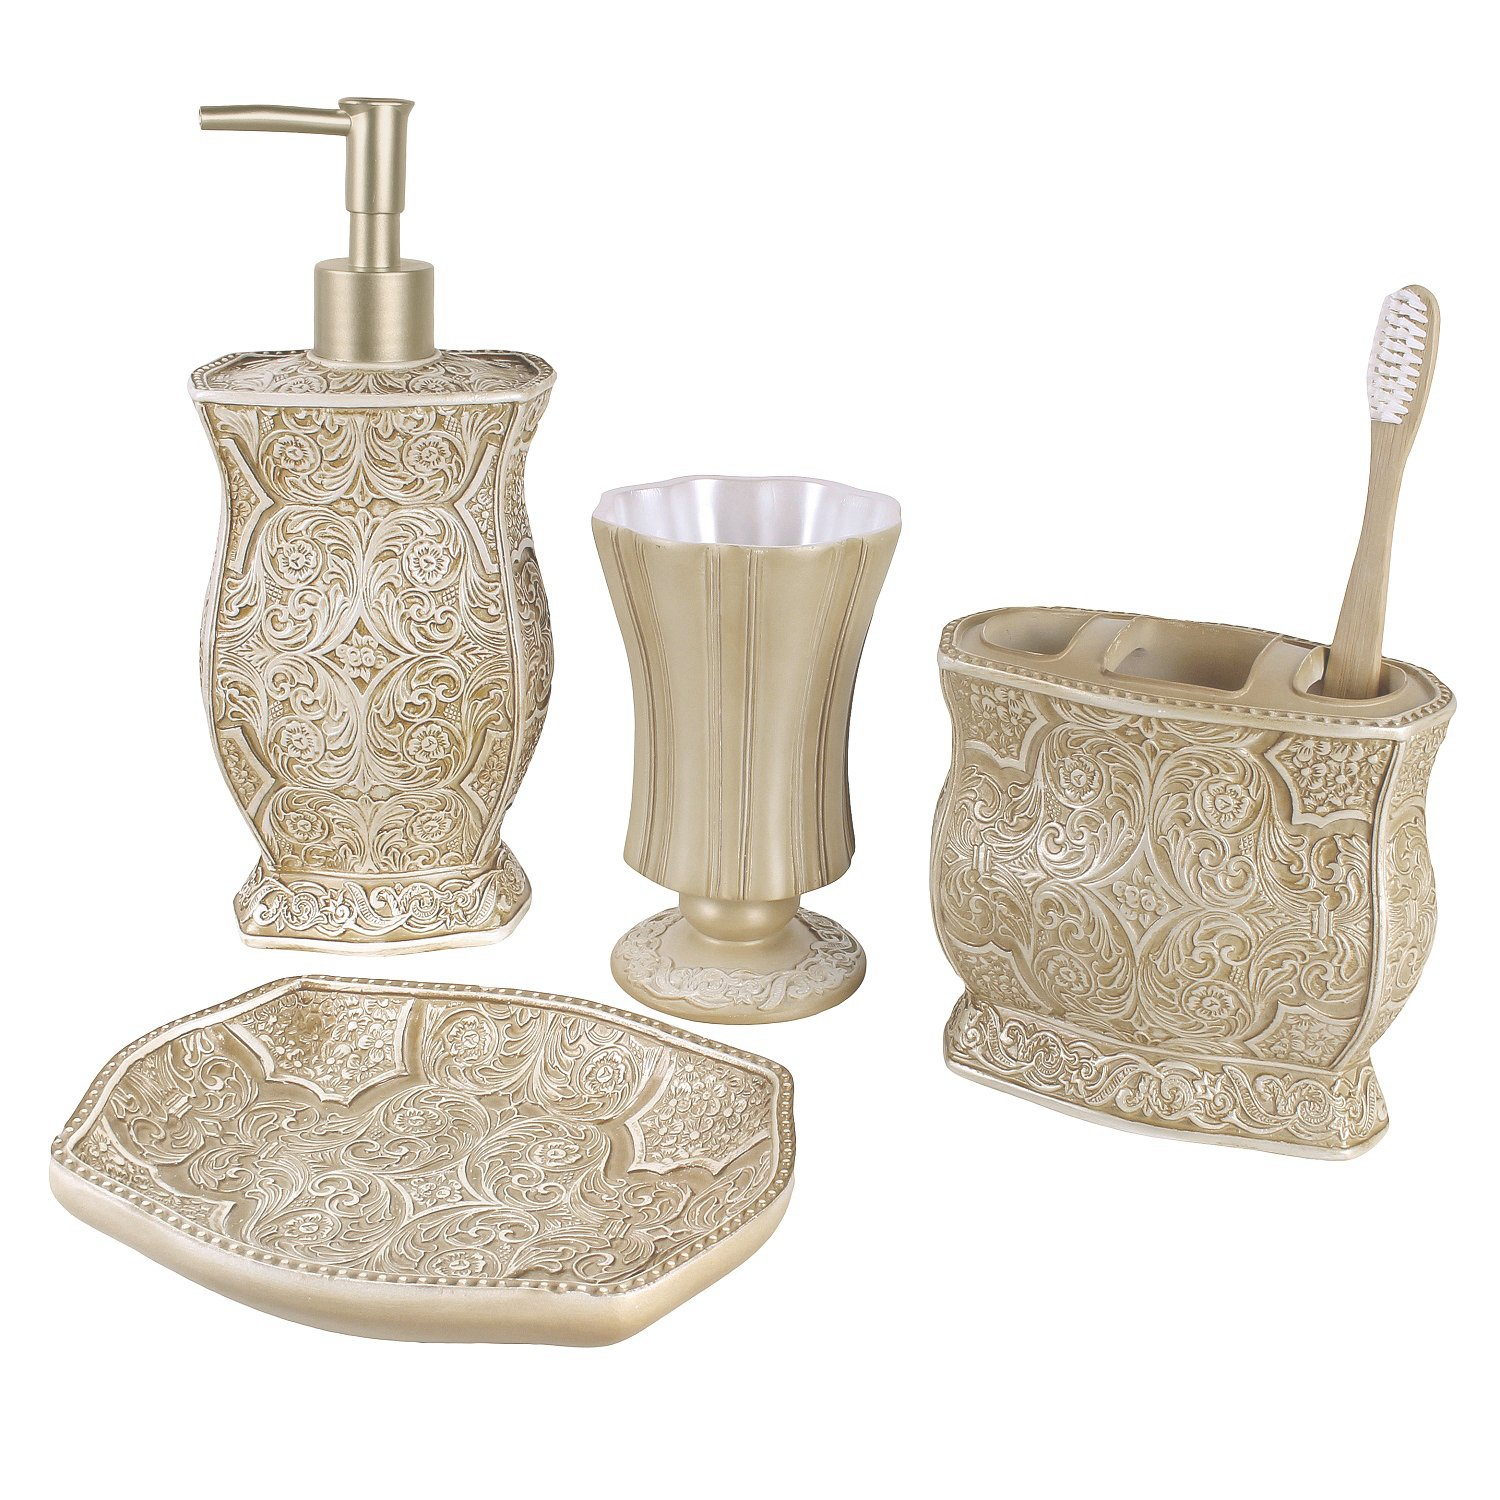 Best Rated in Bathroom Accessory Sets & Helpful Customer Reviews ...